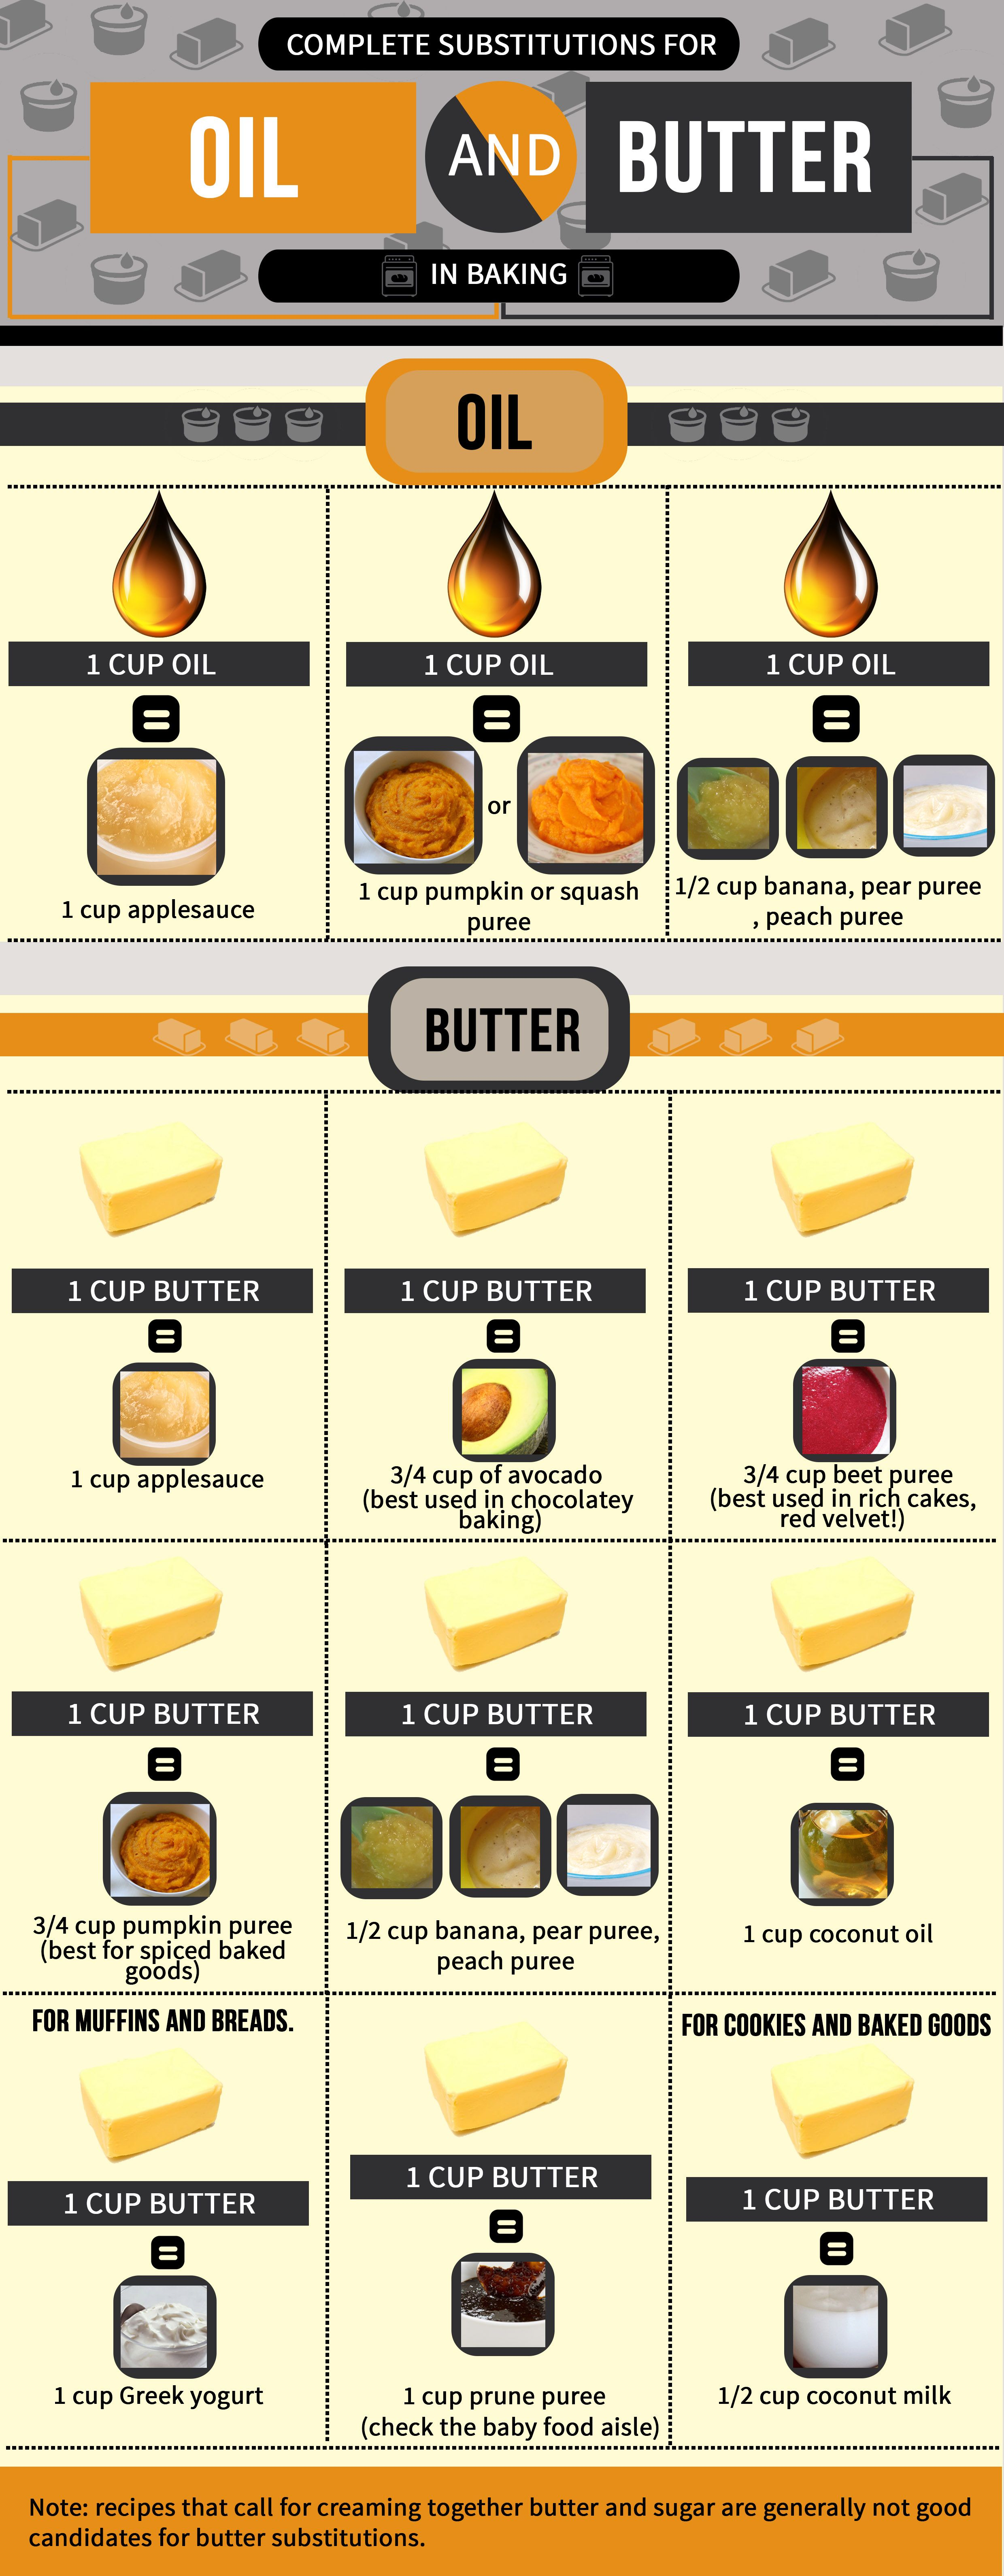 Great info about baking substitutions for oil and butter